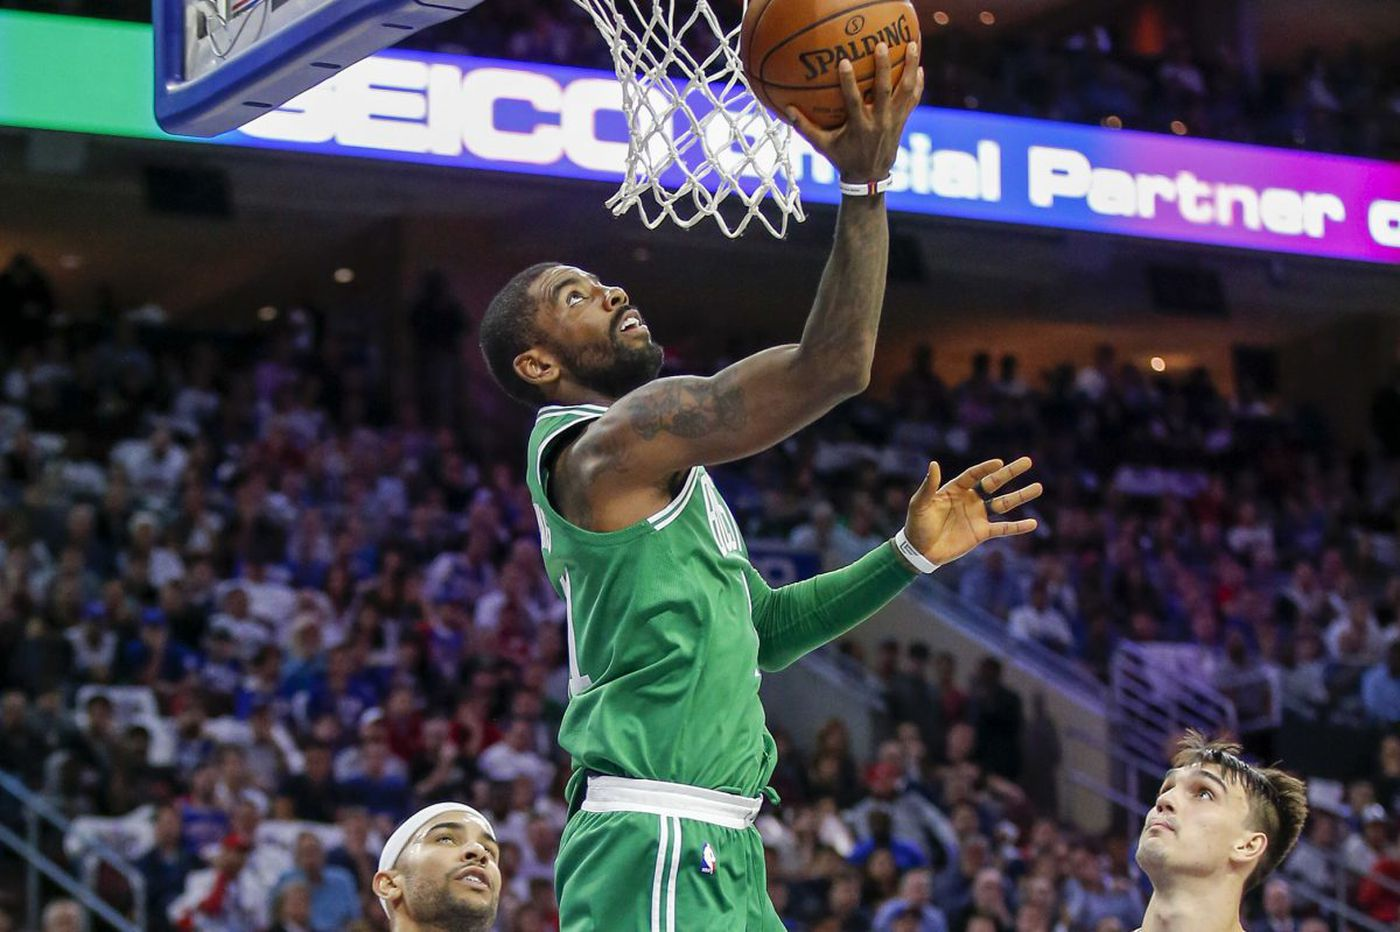 Sports Tonight: Boston has been best in NBA since beating Sixers